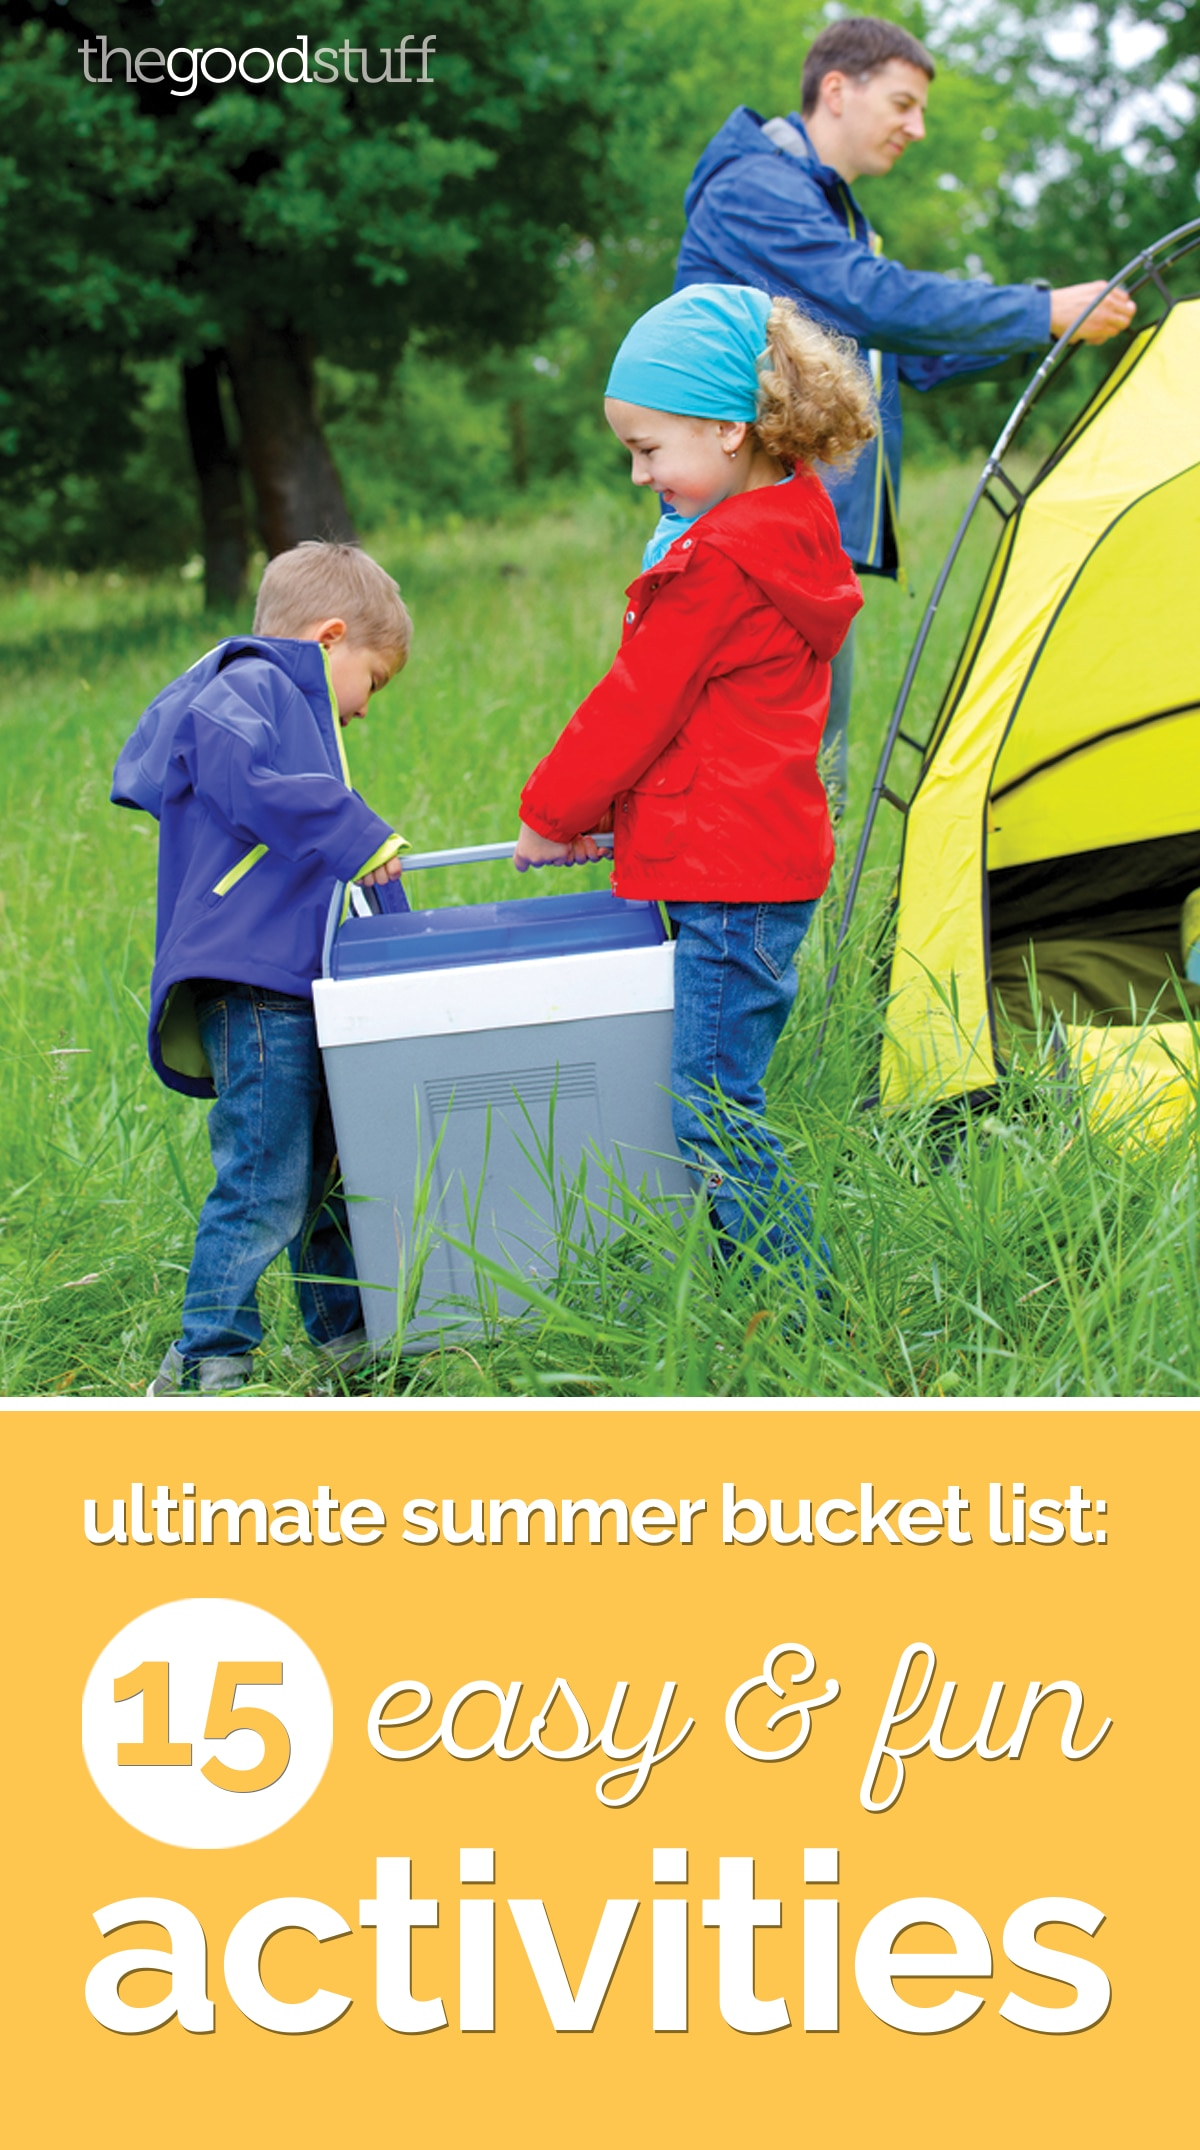 Ultimate Summer Bucket List: 15 Easy & Fun Activities | thegoodstuff